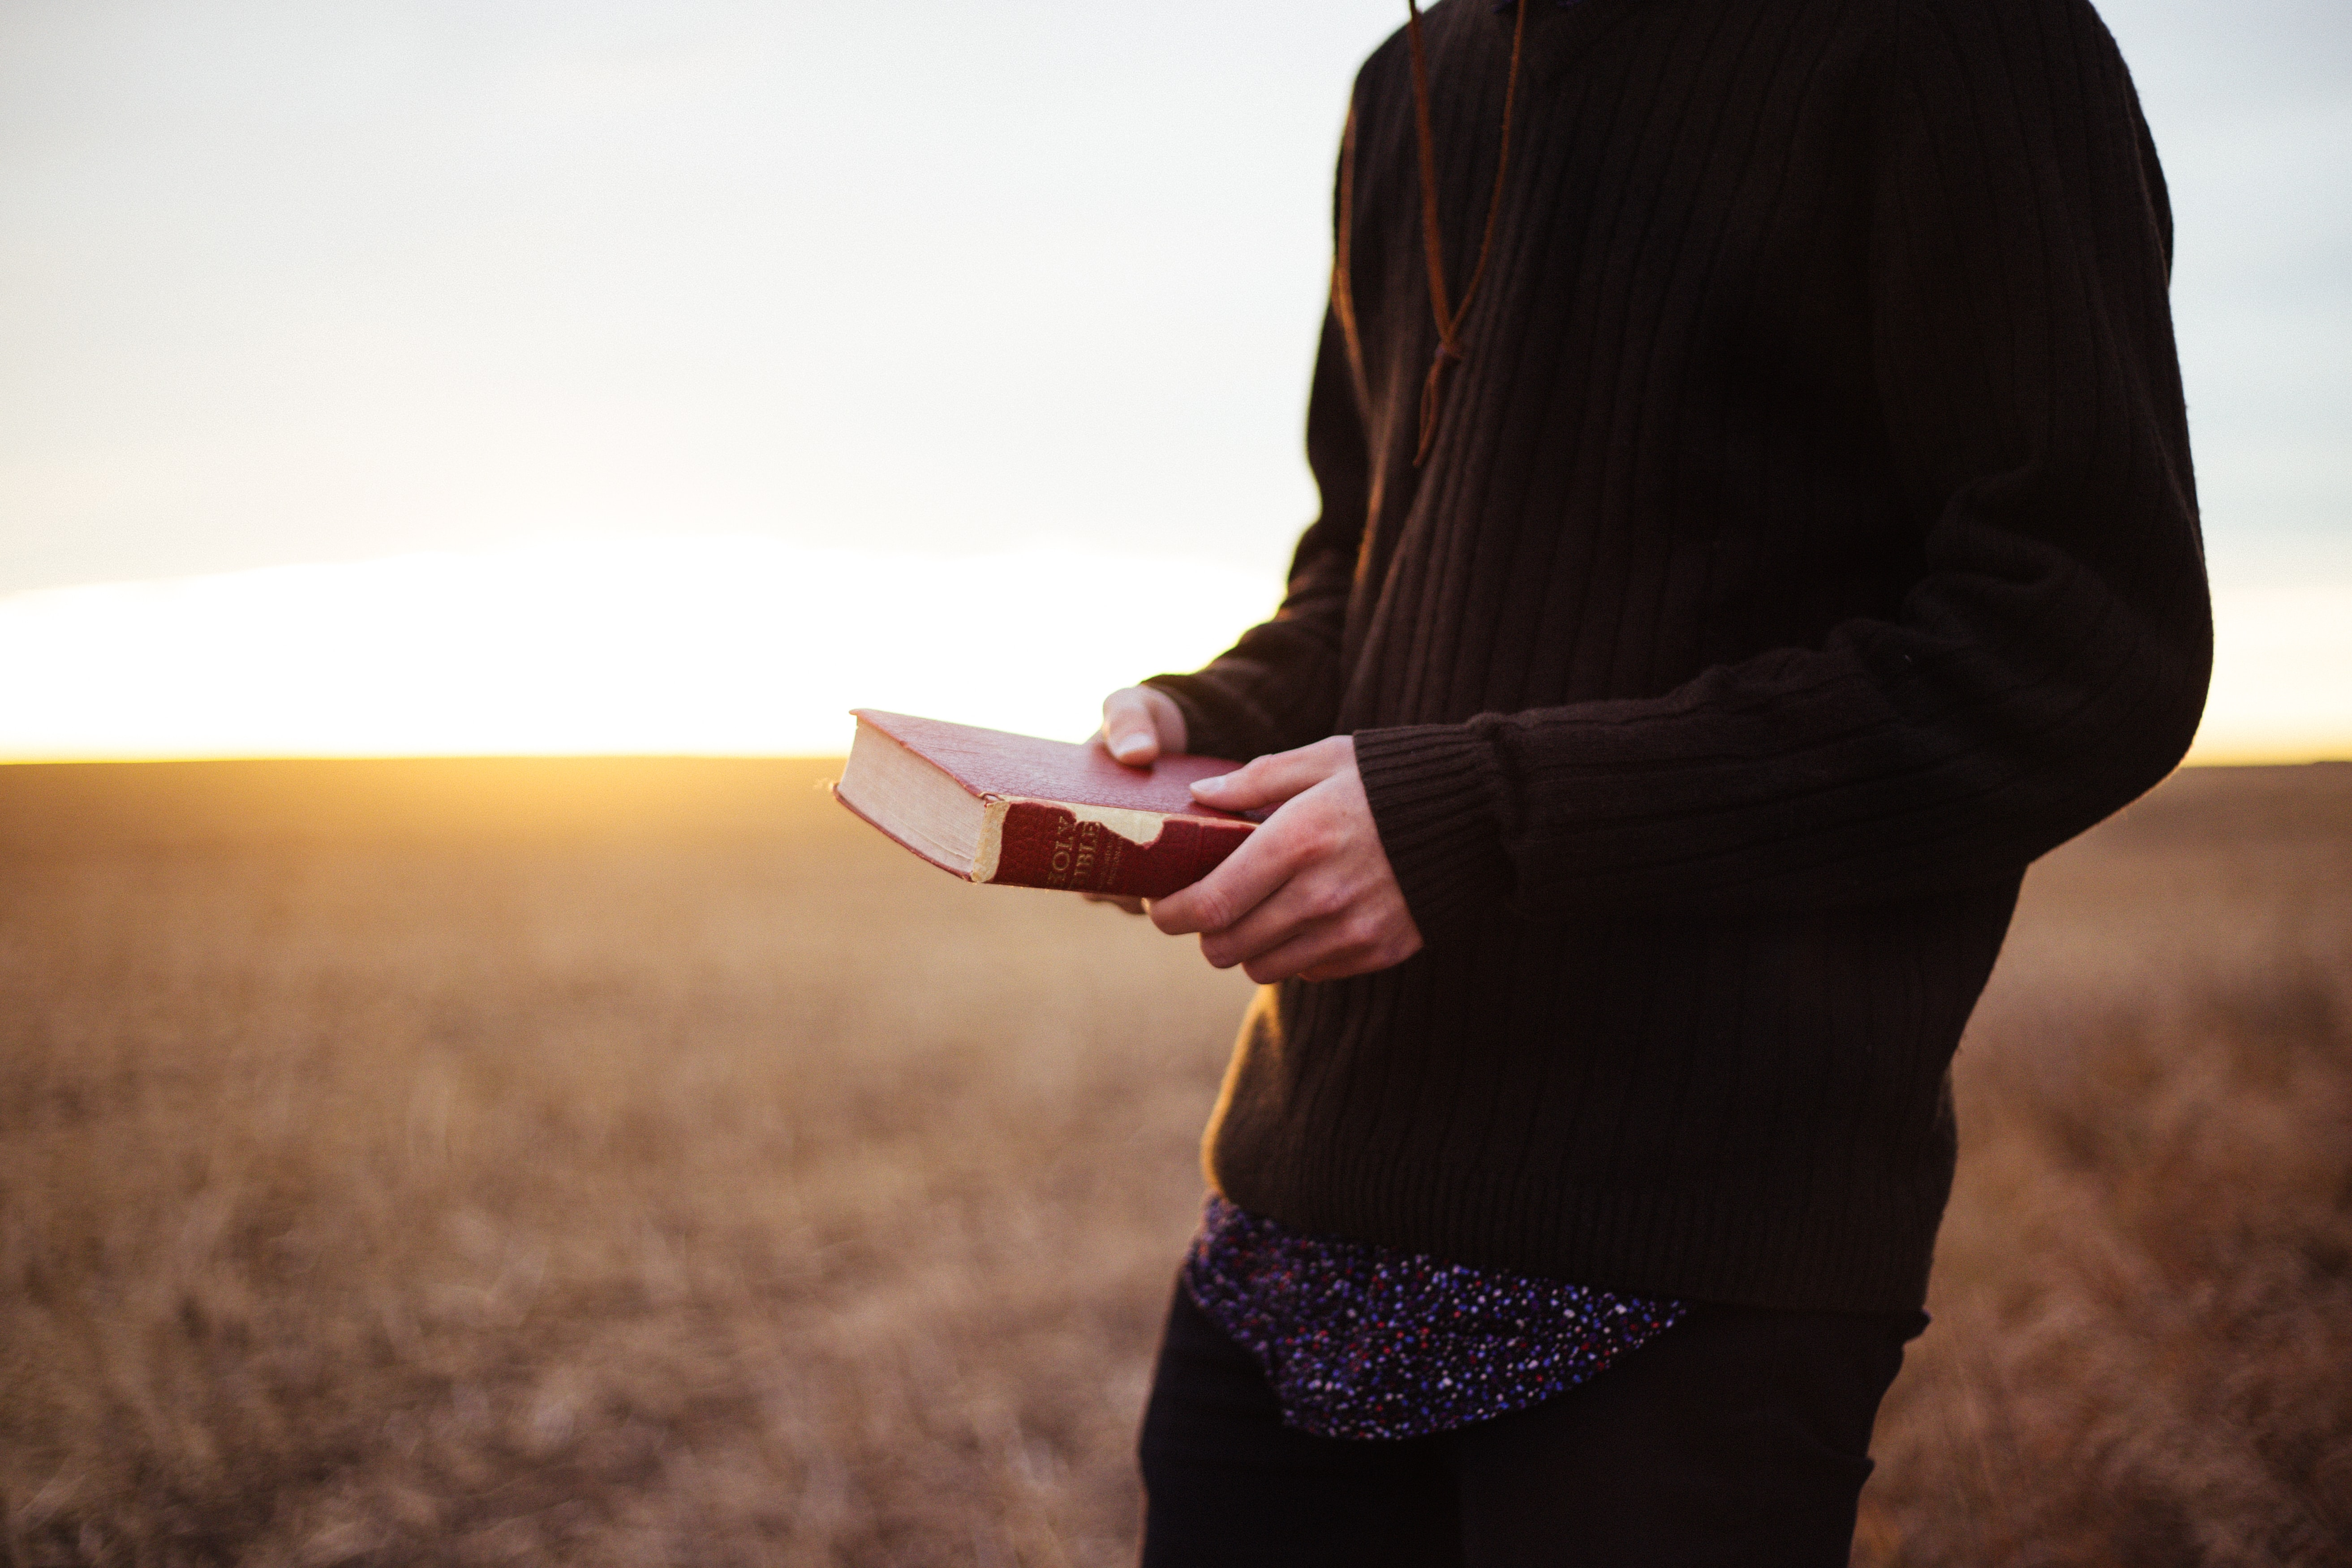 Man in sweater holding bible with two hands in a field during sunset